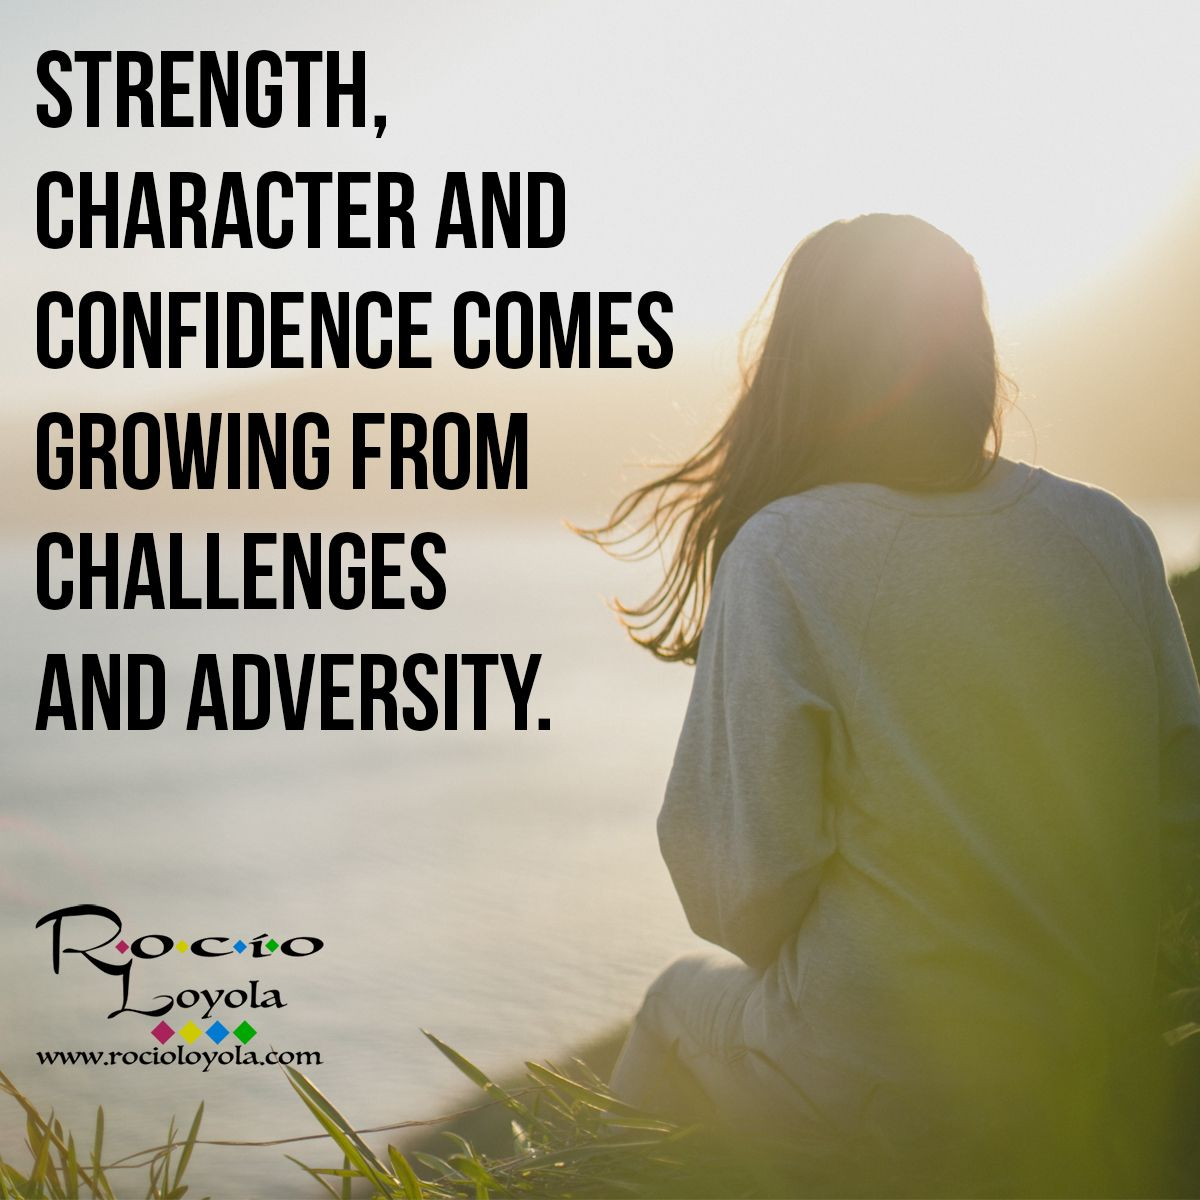 the strength in challenges Browse famous strength quotes about overcoming challenges on searchquotescom.